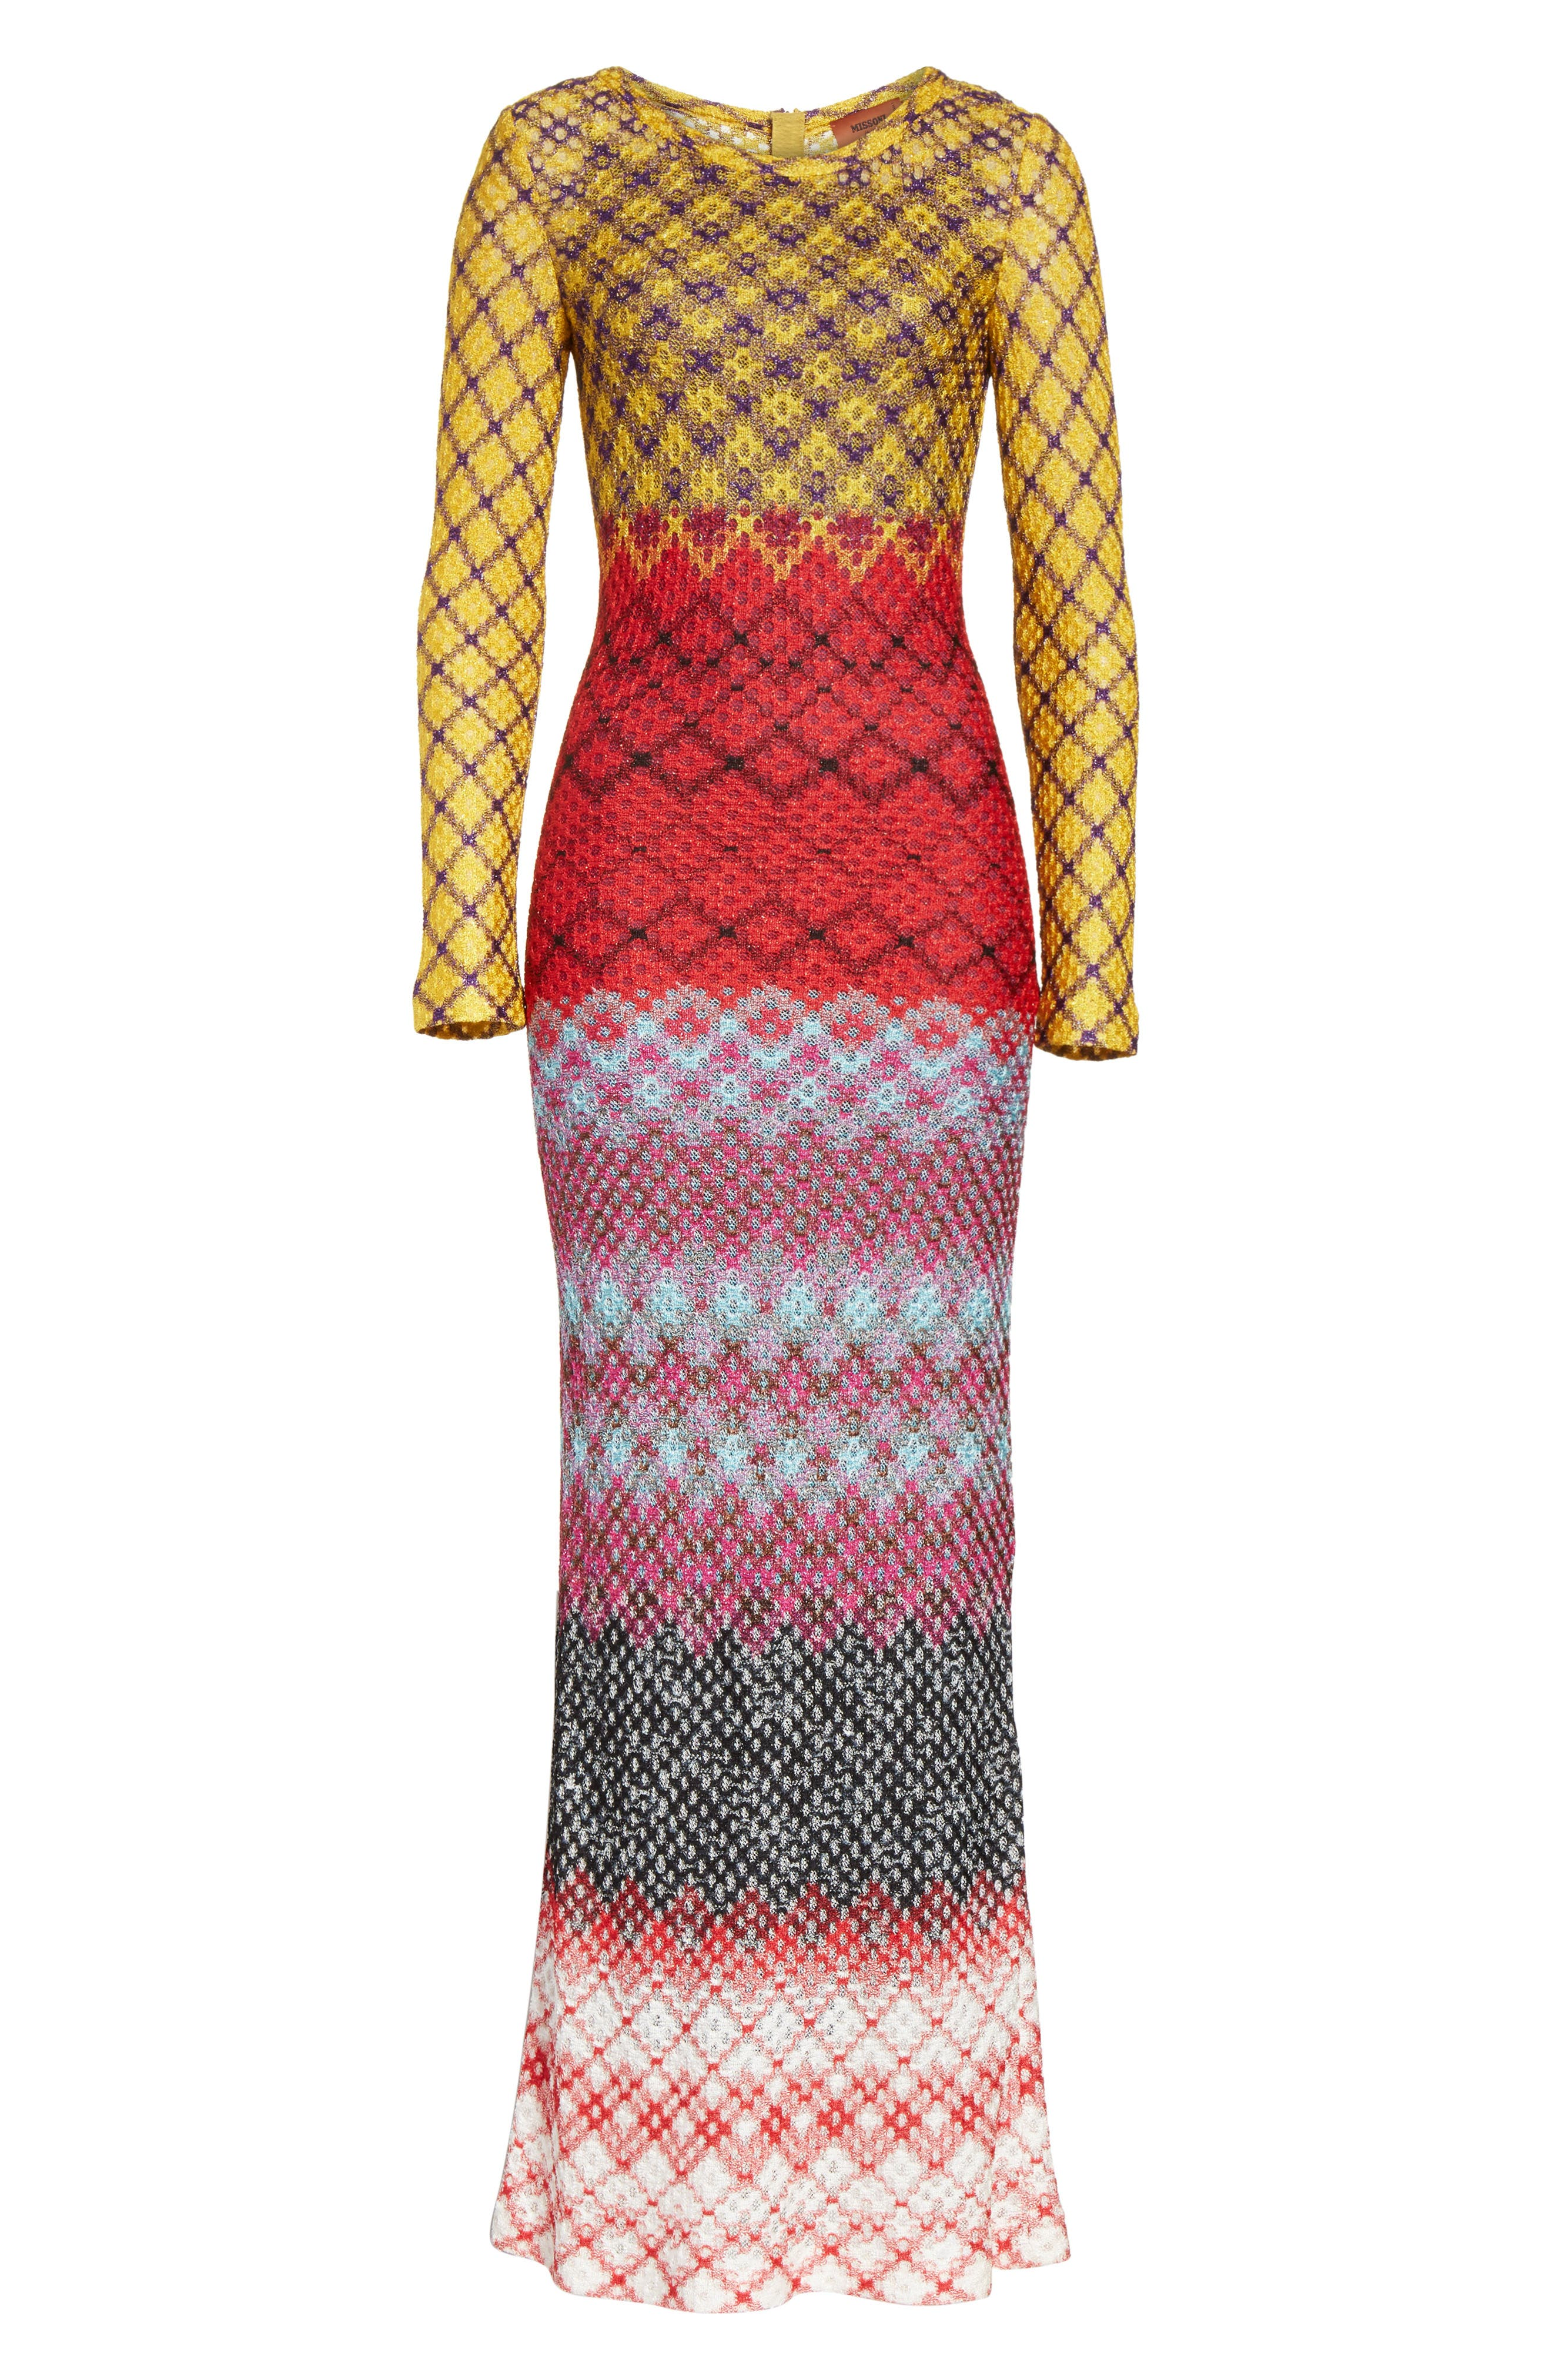 Metallic Knit Maxi Dress,                             Alternate thumbnail 6, color,                             640